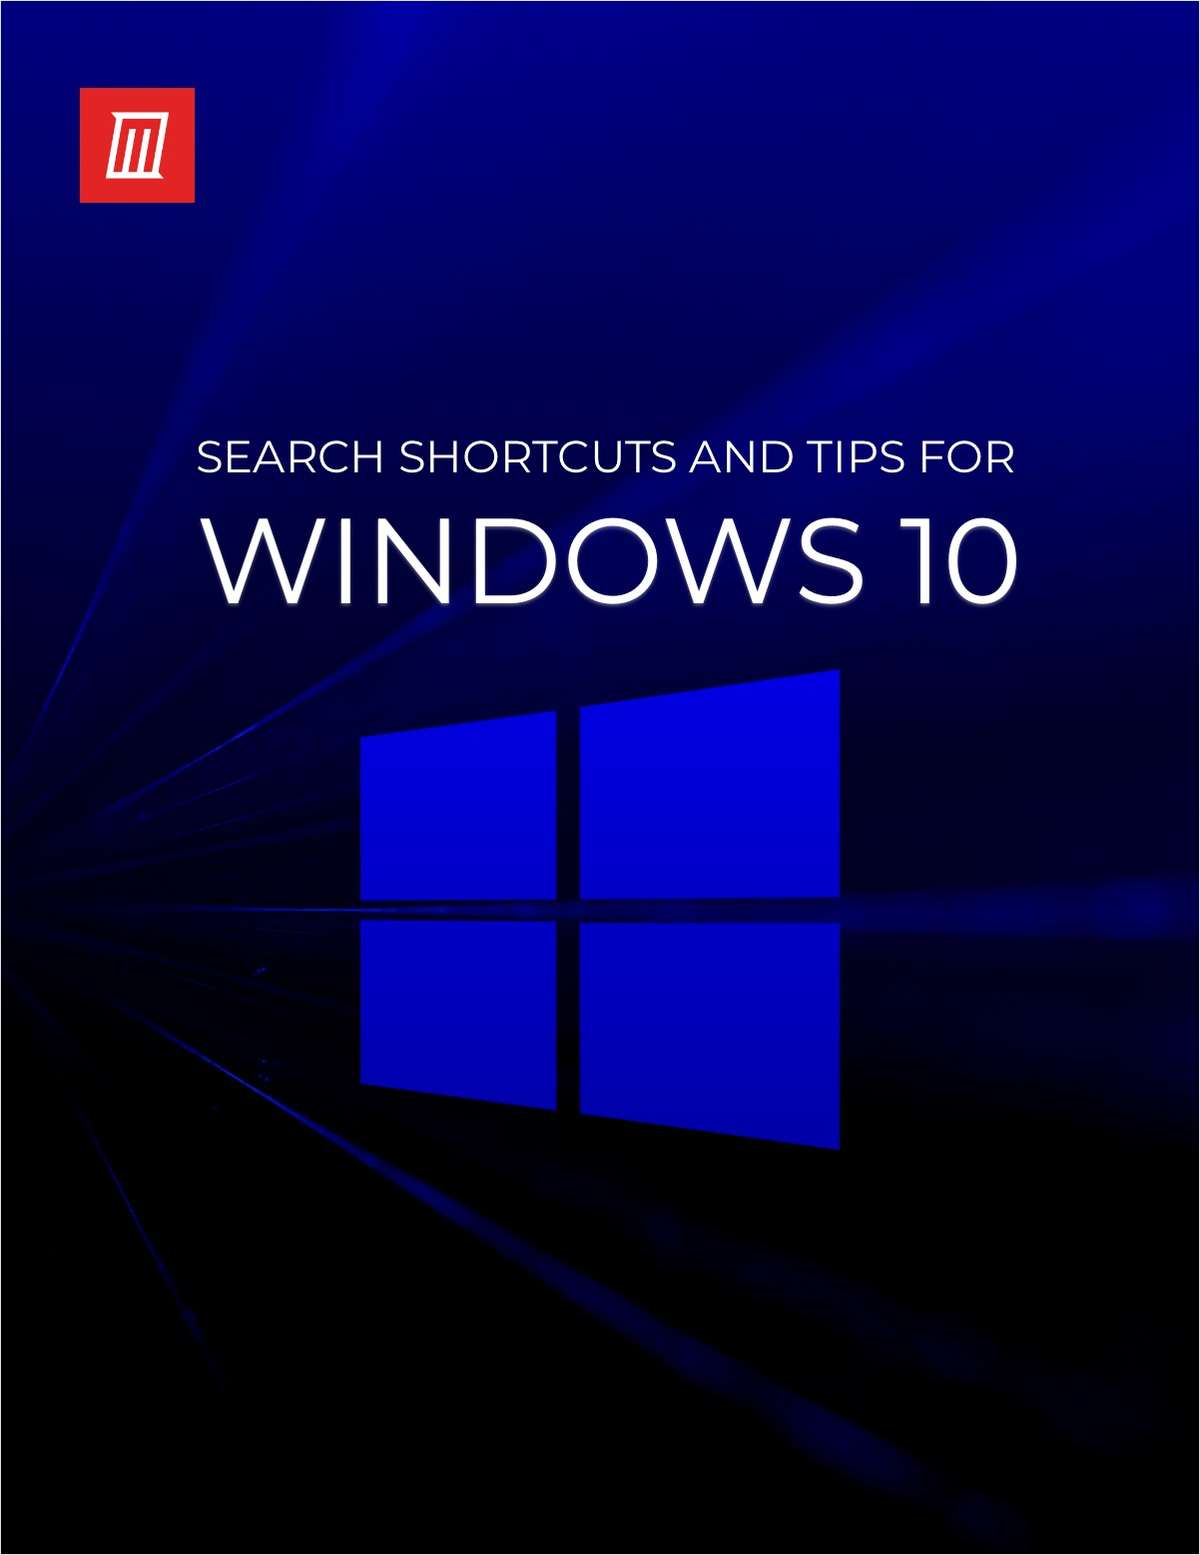 Useful Search Shortcuts and Tips for Windows 10